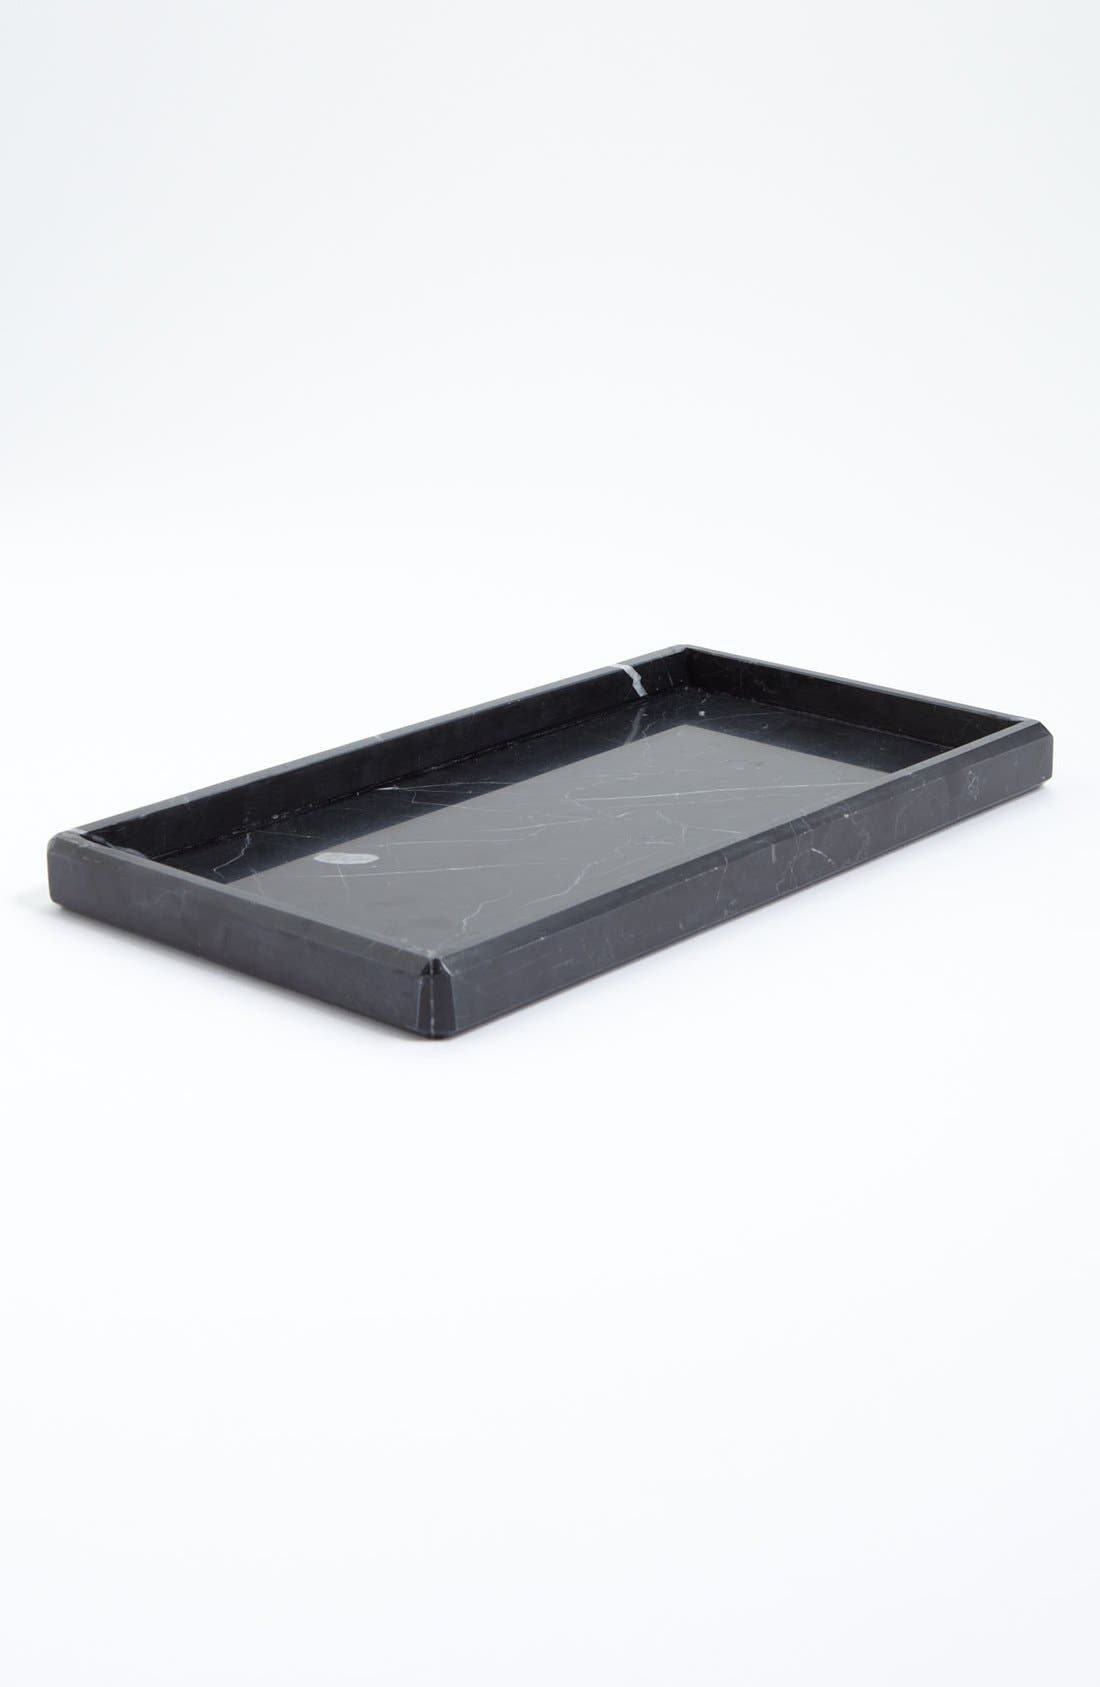 Main Image - Waterworks Studio 'Luna' Black Marble Tray (Online Only)